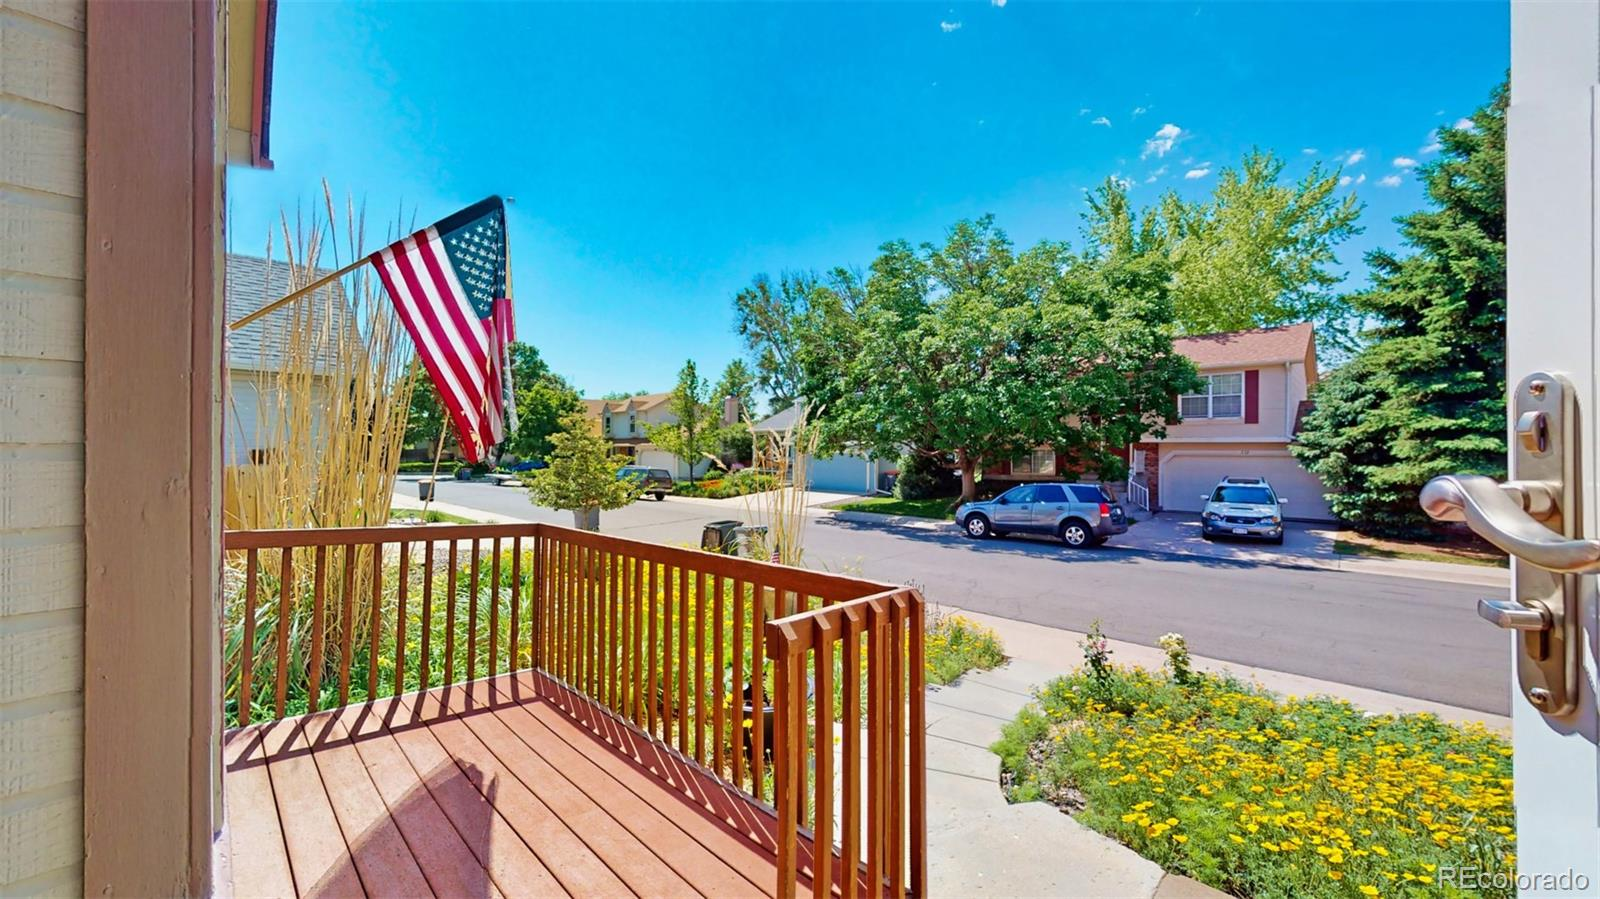 MLS# 3885943 - 5 - 313 Mulberry Circle, Broomfield, CO 80020